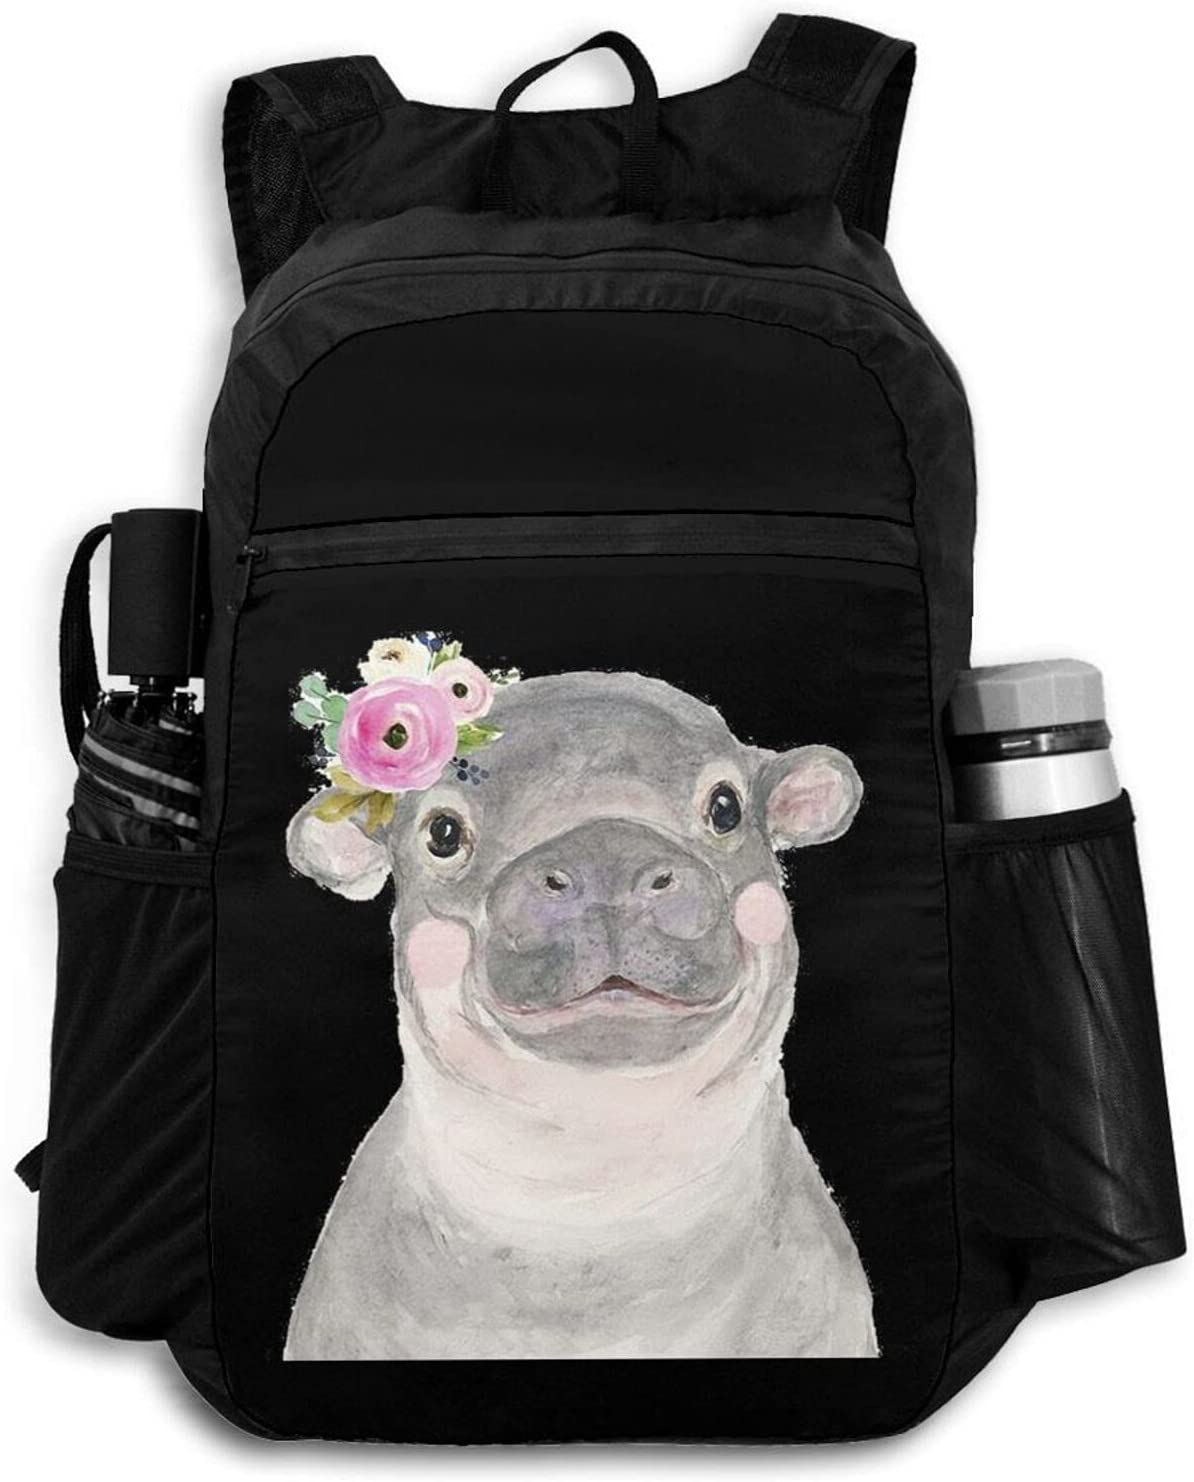 Zolama Hippo Backpacks Max 61% OFF for Women Men Light Packable Cute Daypack New products, world's highest quality popular!